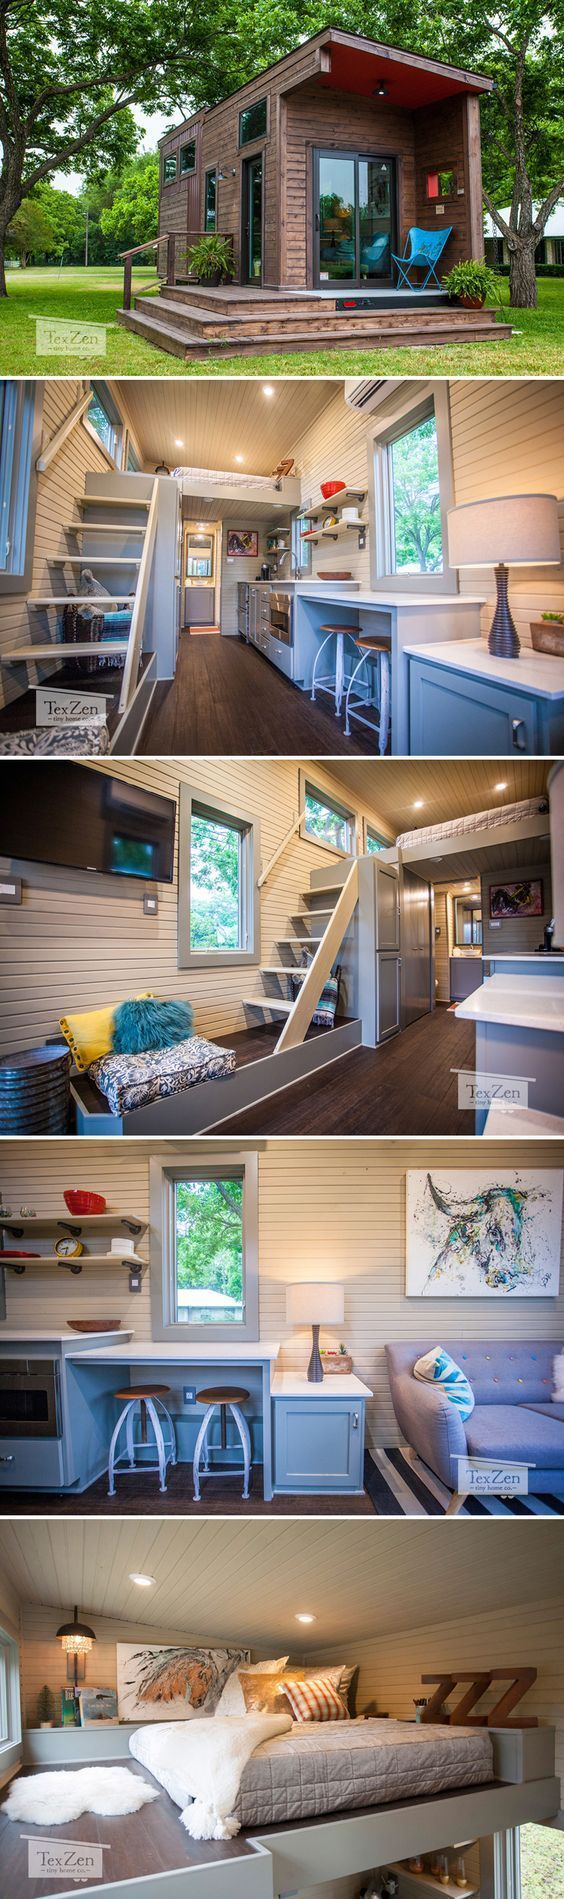 Badezimmer design 2 x 2 meter  best tiny house images on pinterest  small houses tiny cabins